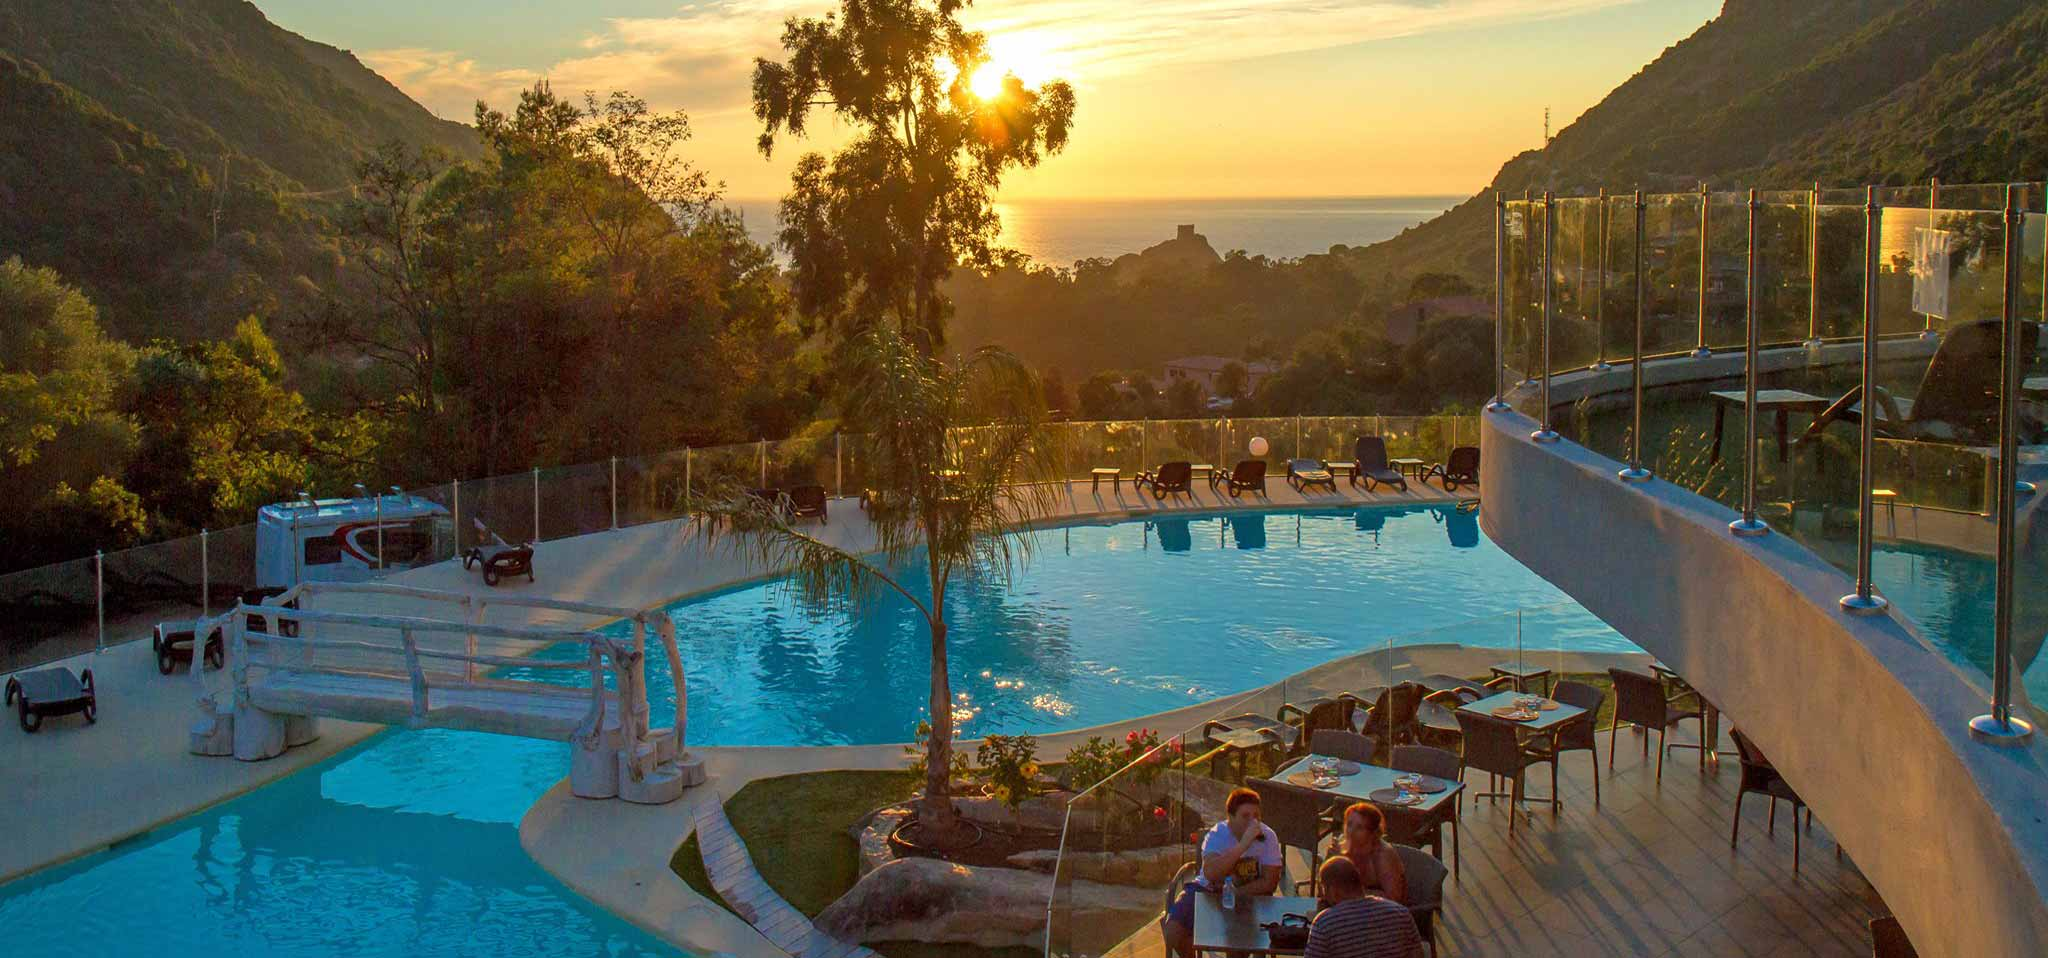 Camping corse entre mer et montagne camping taxo les pins